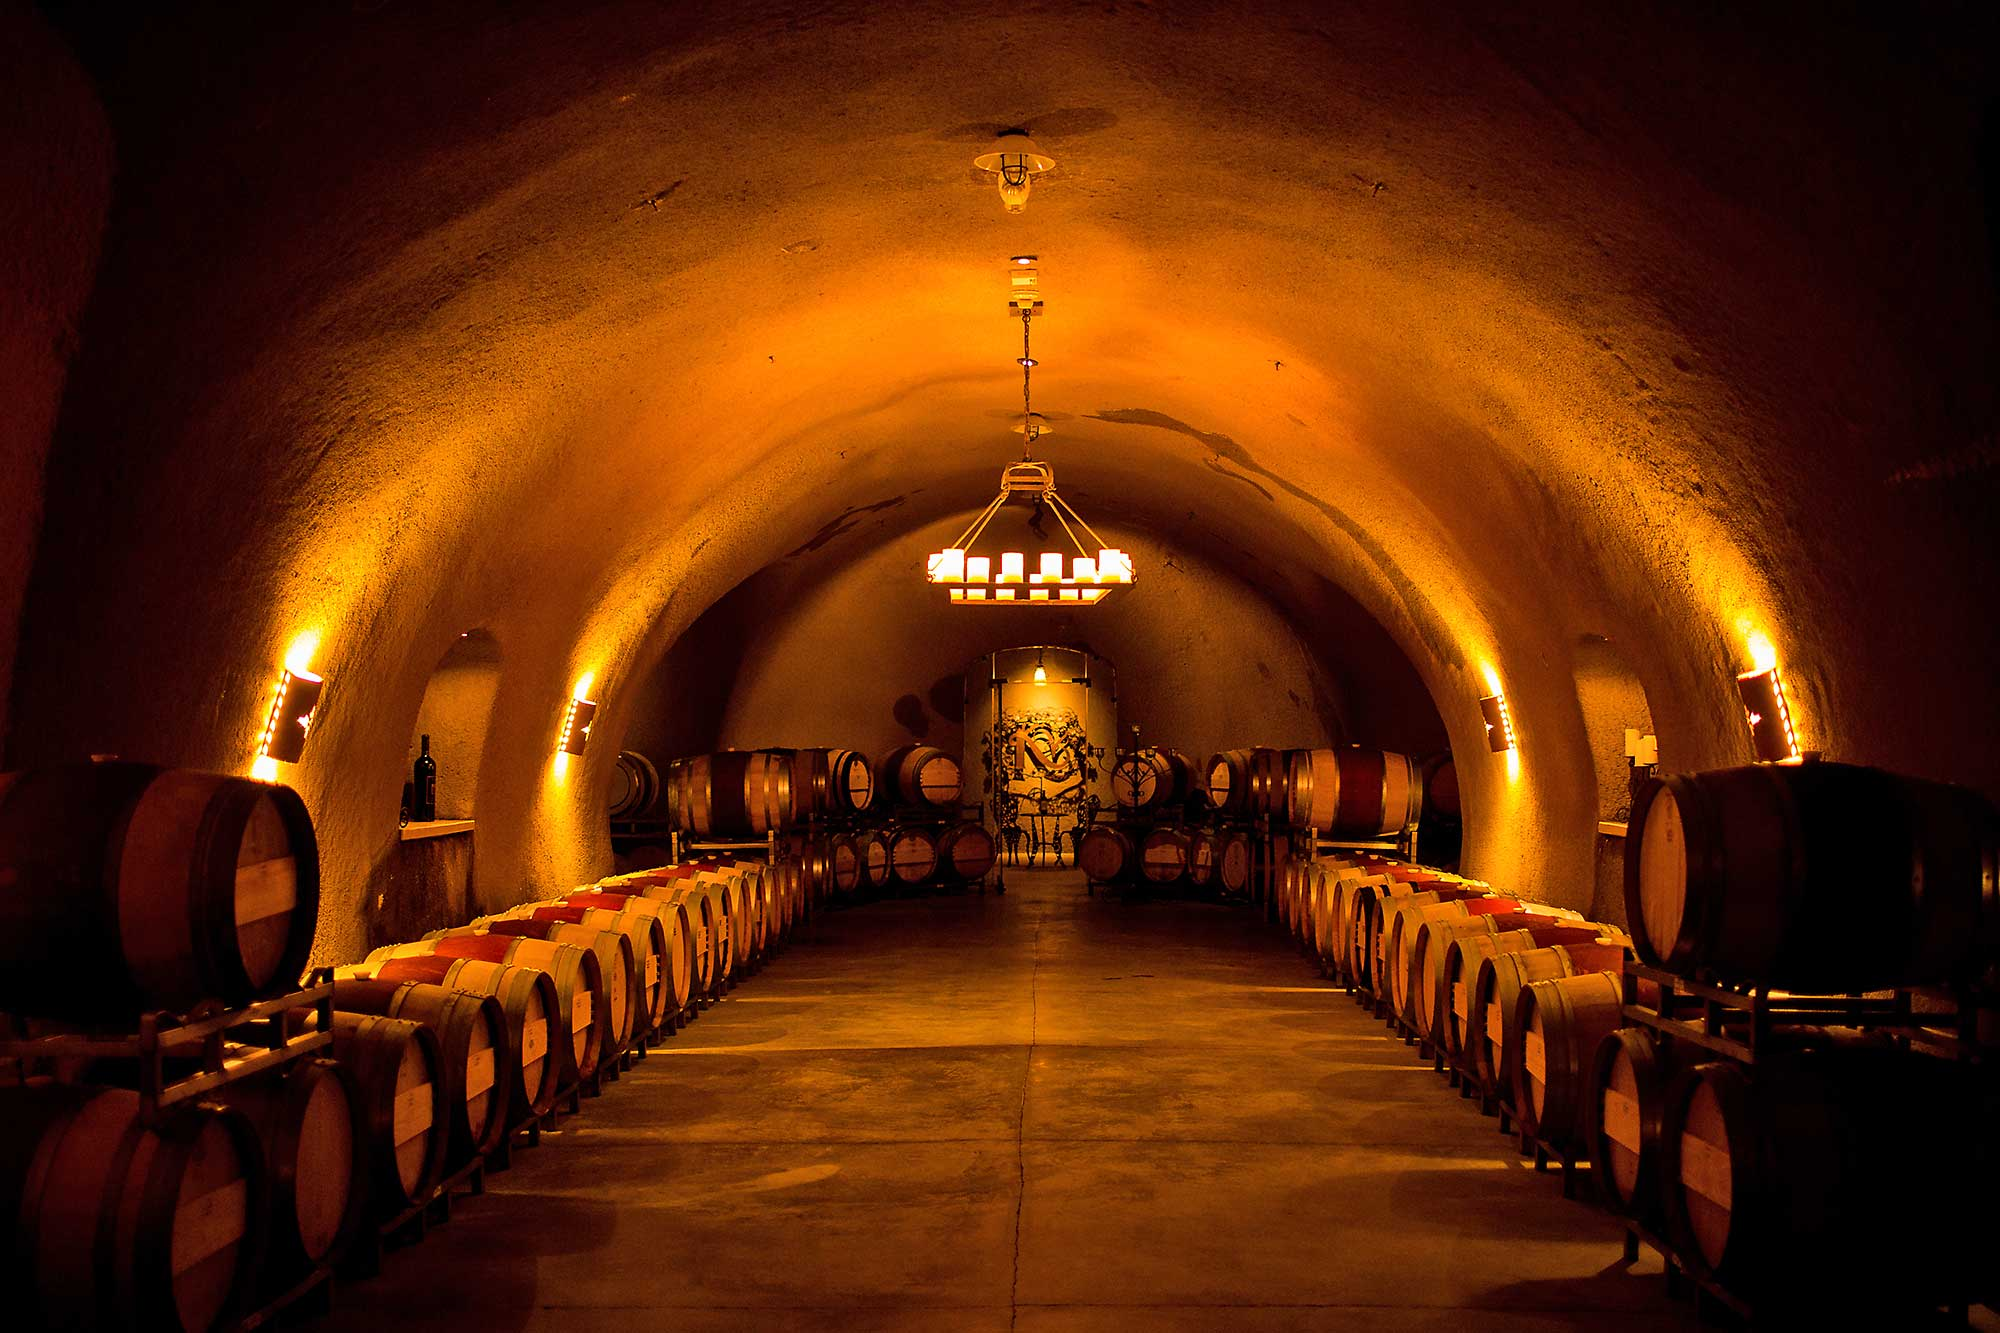 The Keever Vineyards wine cave in Yountville, CA